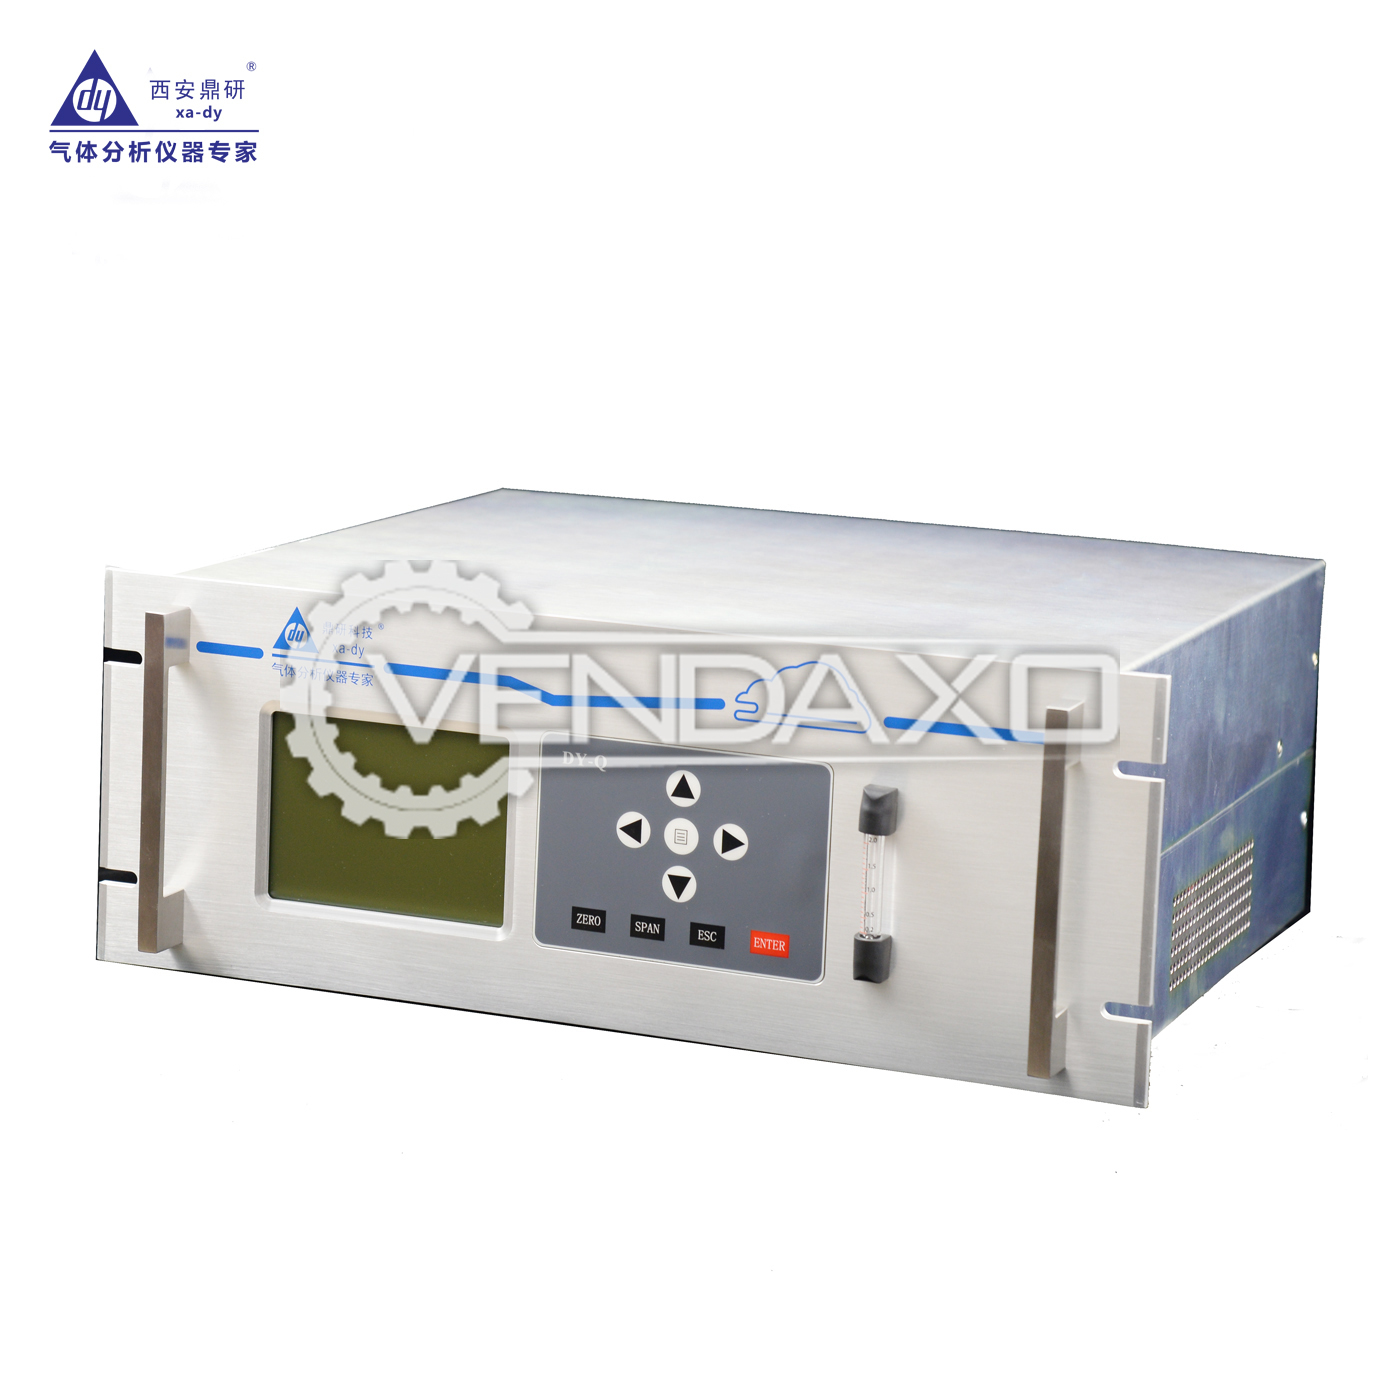 DY - Q3 Infrared Gas Analyzer - 600 x 500 x 280 mm